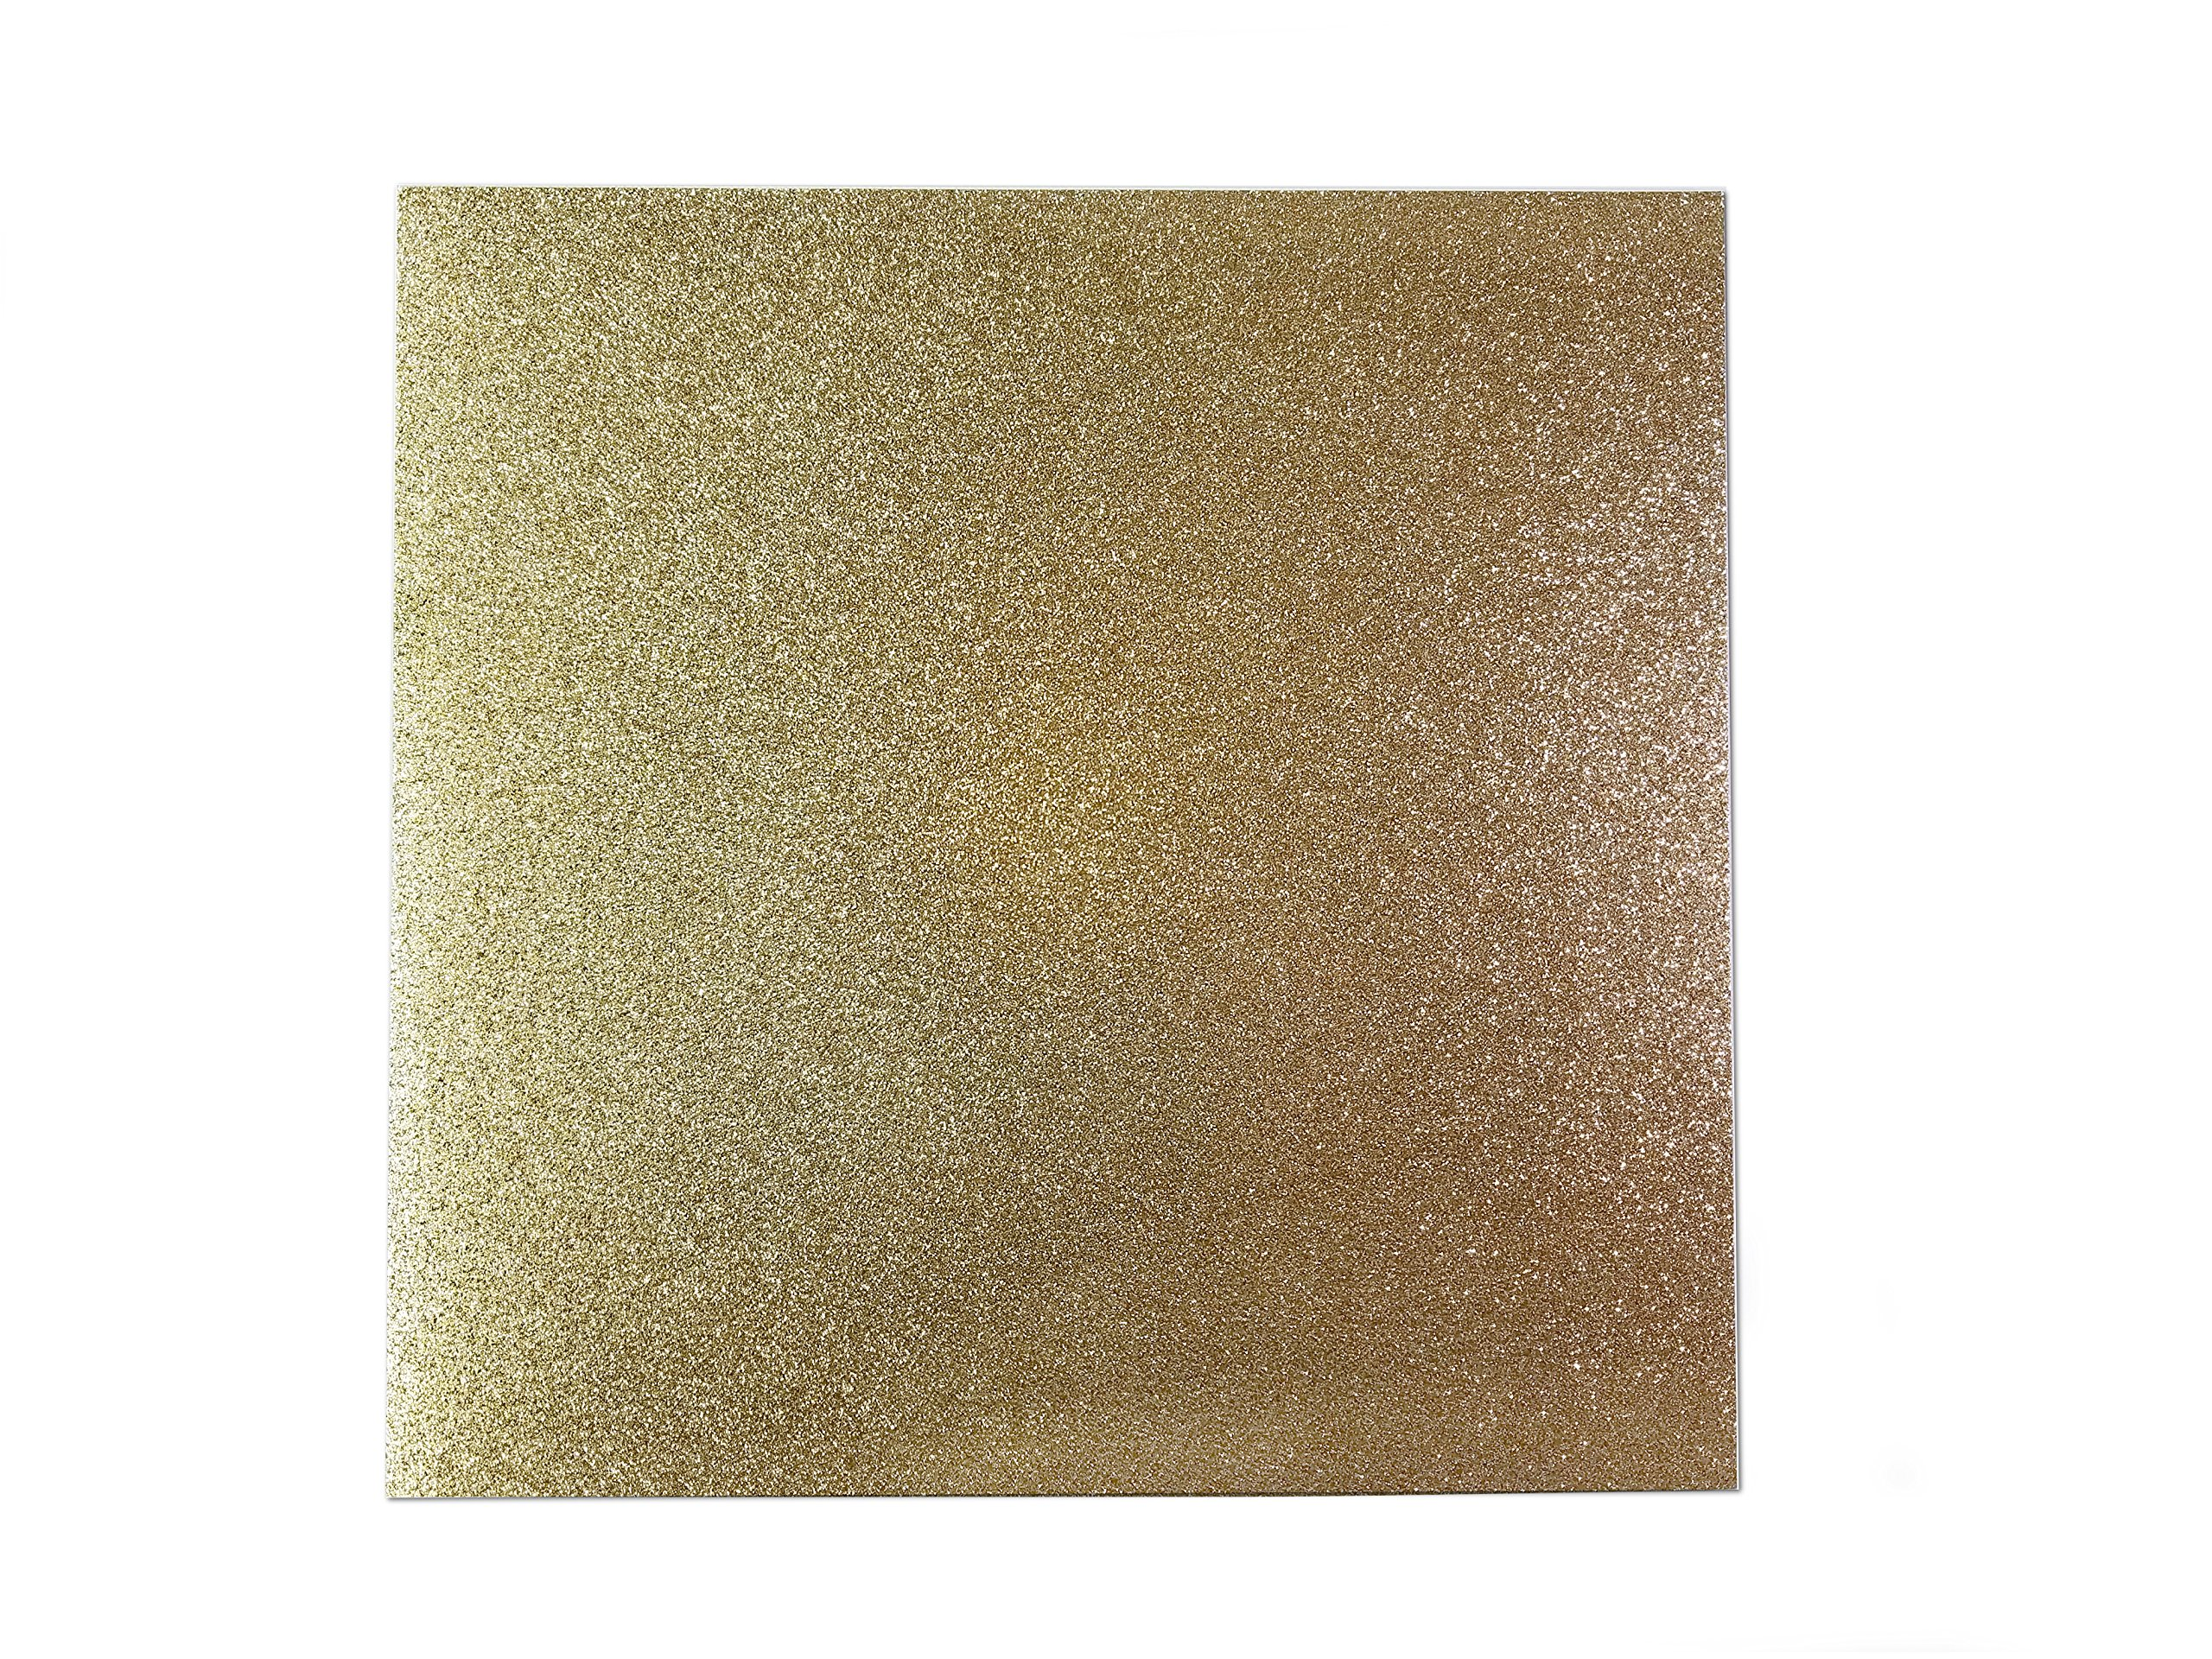 CraftMore 12x12'' Gold Glitter Cardstock 85lb 10 Pack